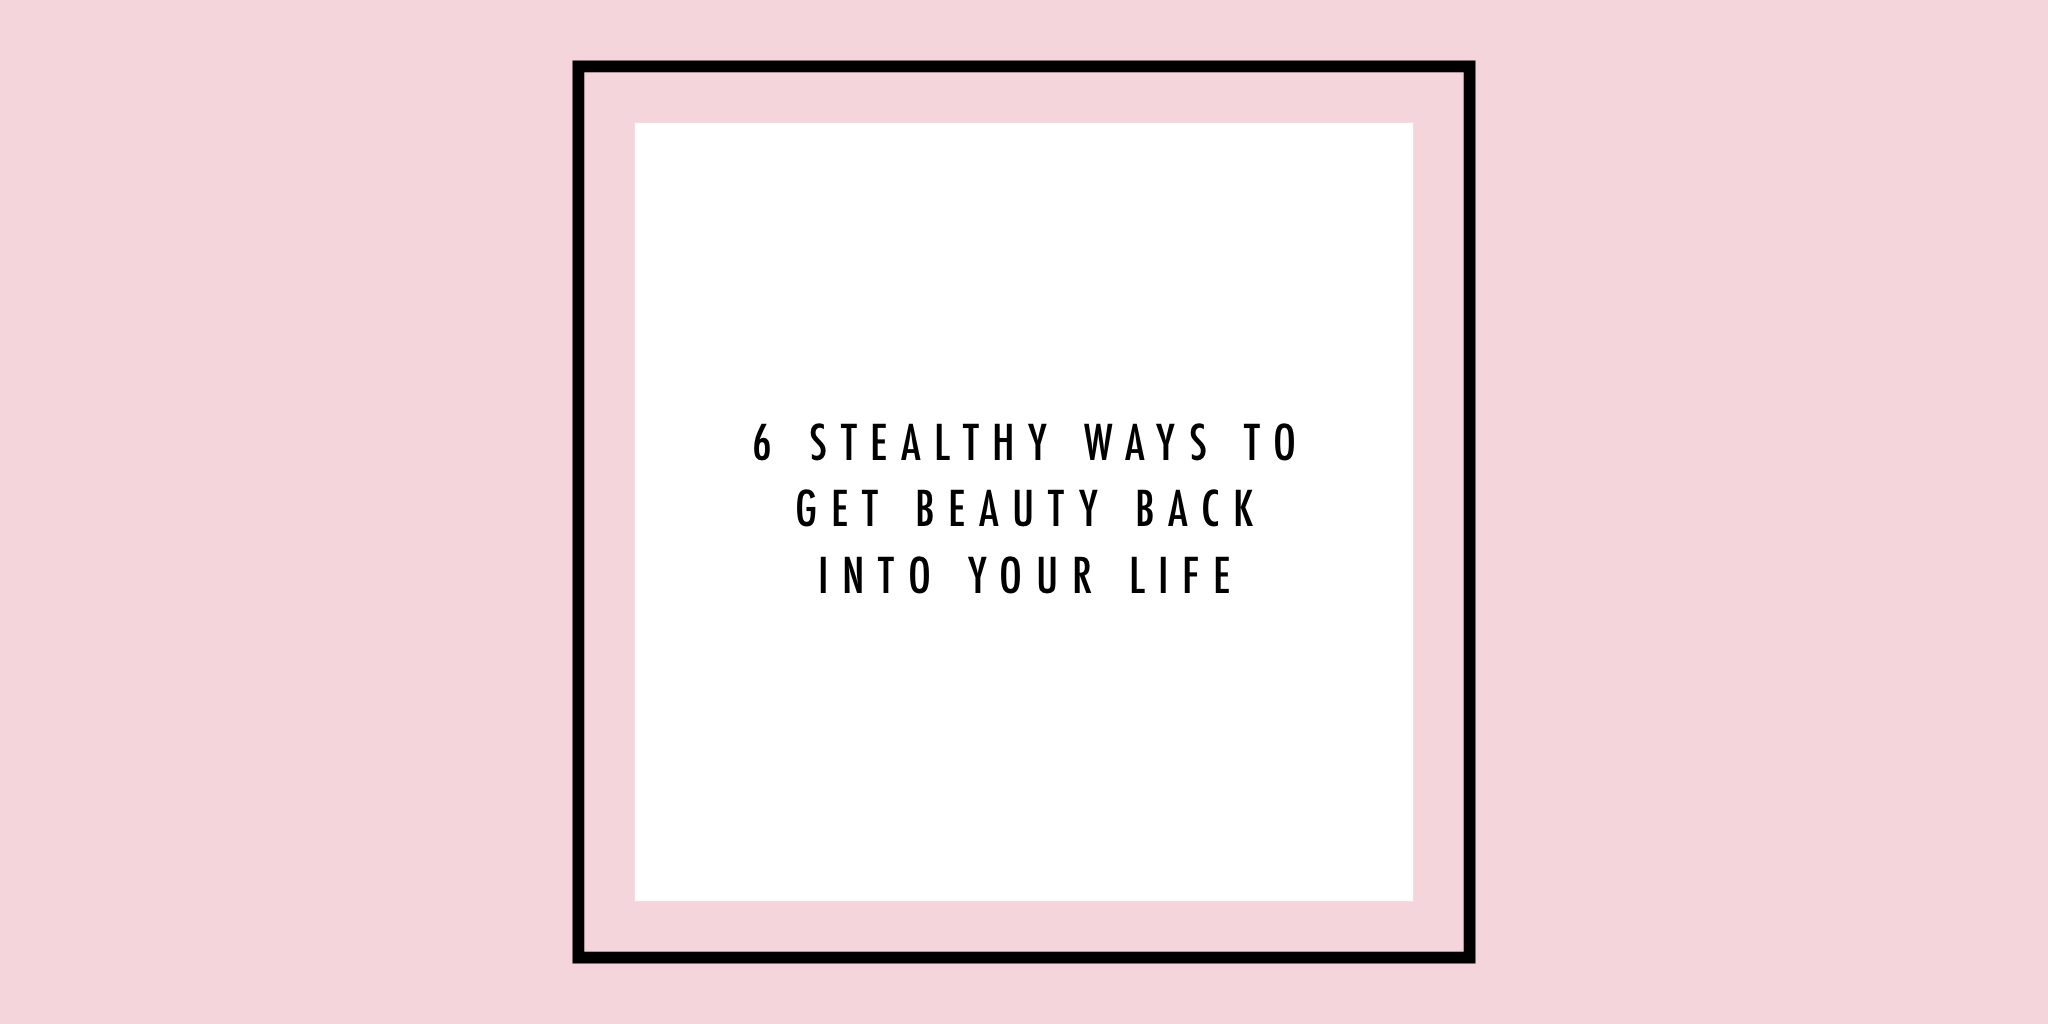 6 stealthy ways to get beauty back into your life.JPG